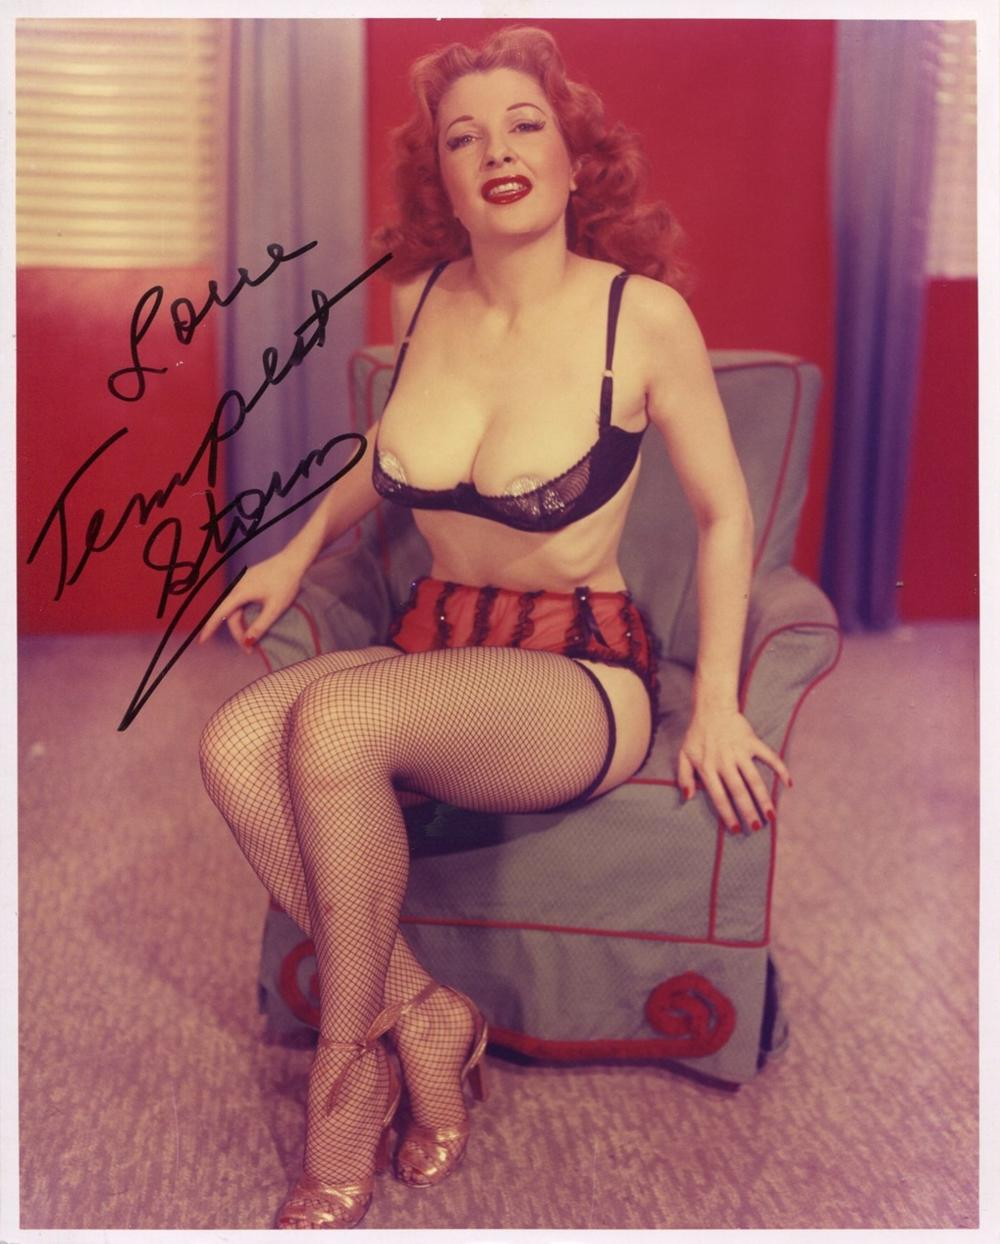 """Burlesque queen and stripper Tempest Storm signed 8x10 photo, also dubbed """"The Queen of Exotic"""